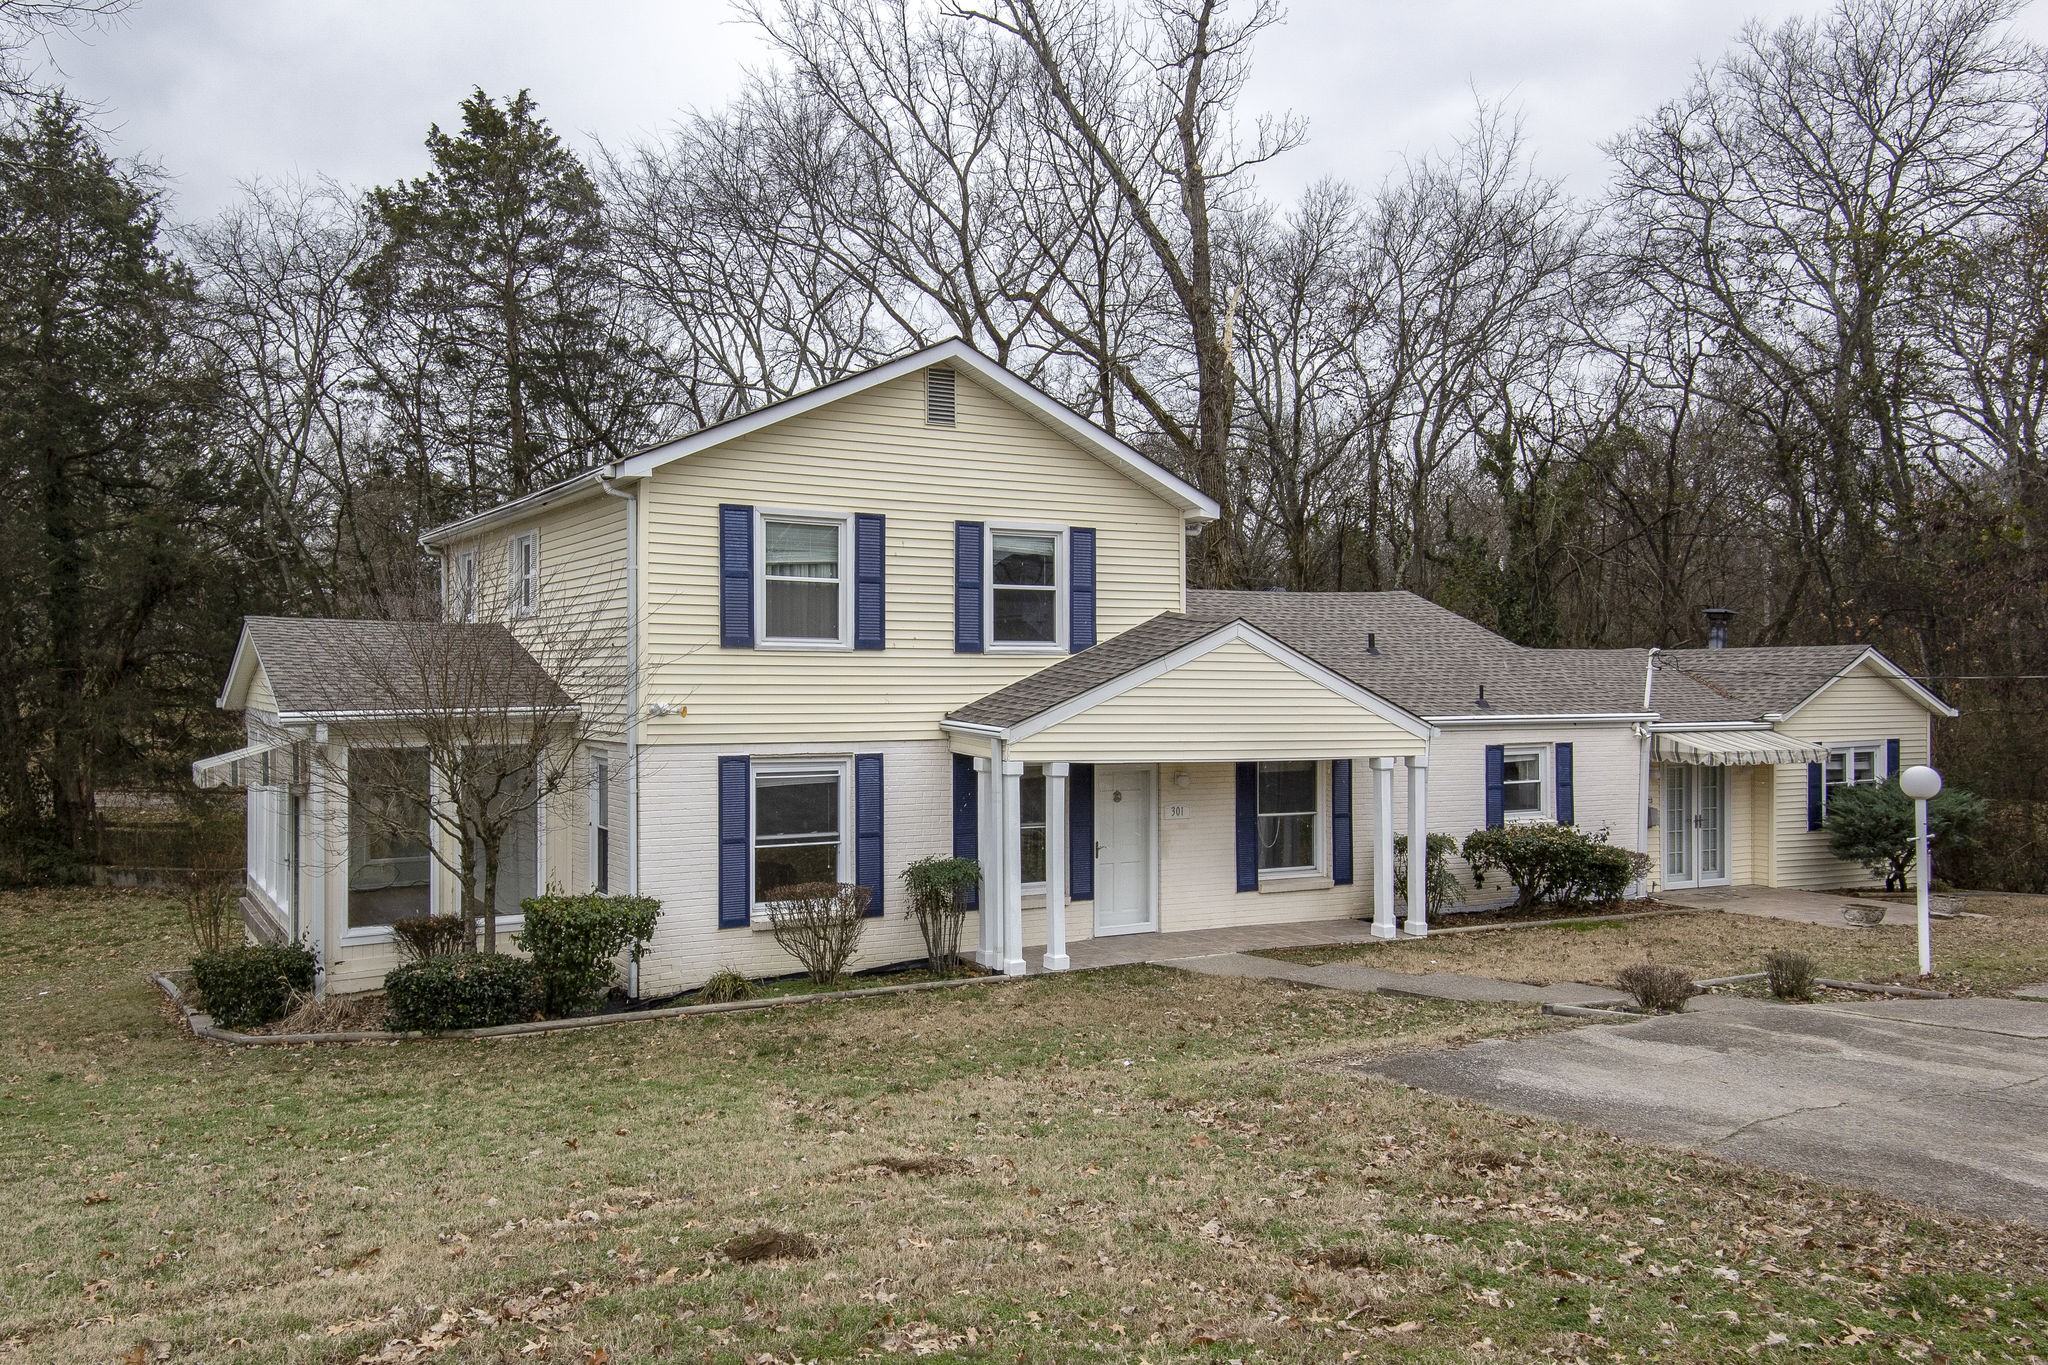 301 Walton Ln, Madison, TN 37115 - Madison, TN real estate listing